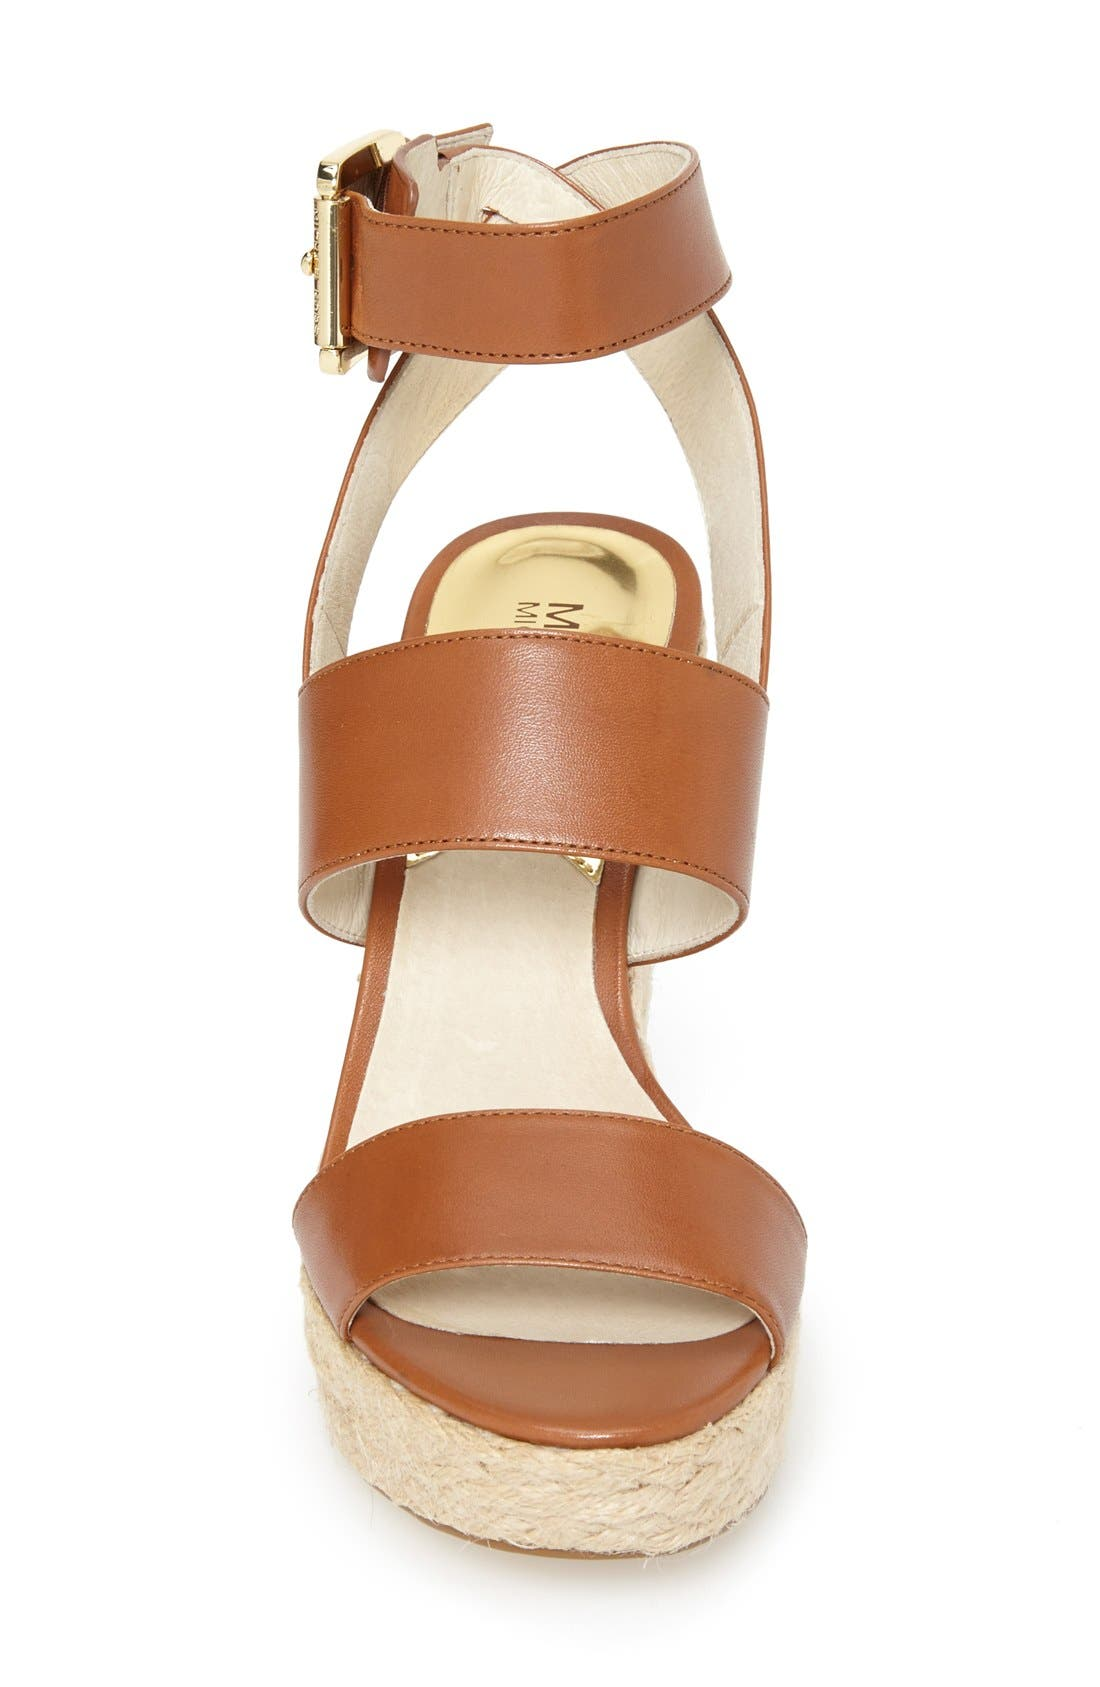 Alternate Image 3  - MICHAEL Michael Kors 'Posey' Ankle Strap Espadrille Wedge Sandal (Women)